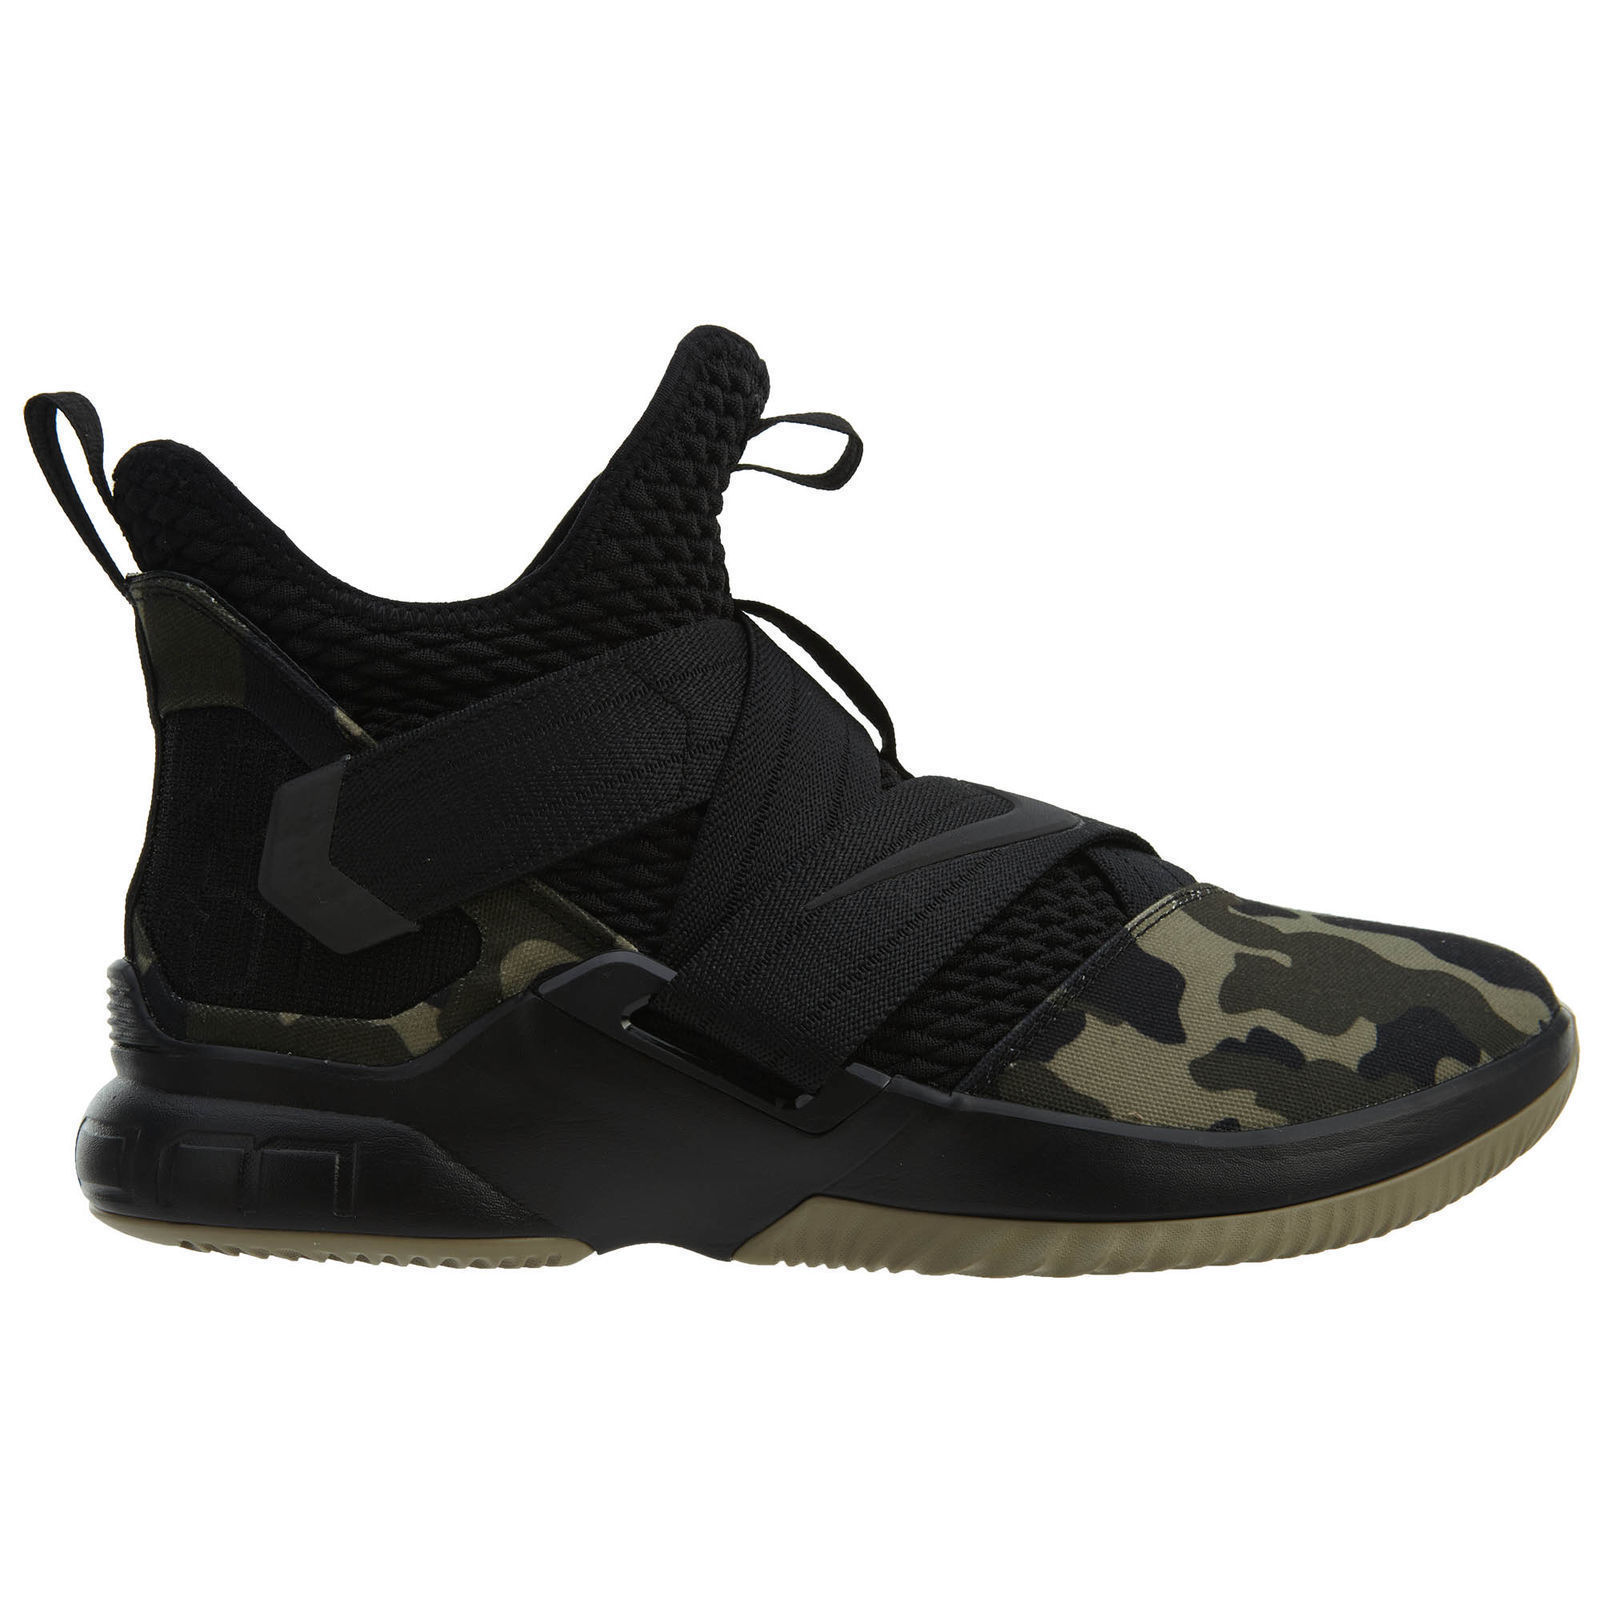 sports shoes b691f 80959 S l1600. S l1600. Previous. Nike Men s Lebron Soldier XII SFG Sneakers Size  7 to 13 us AO4054 001 · Nike Men s Lebron ...